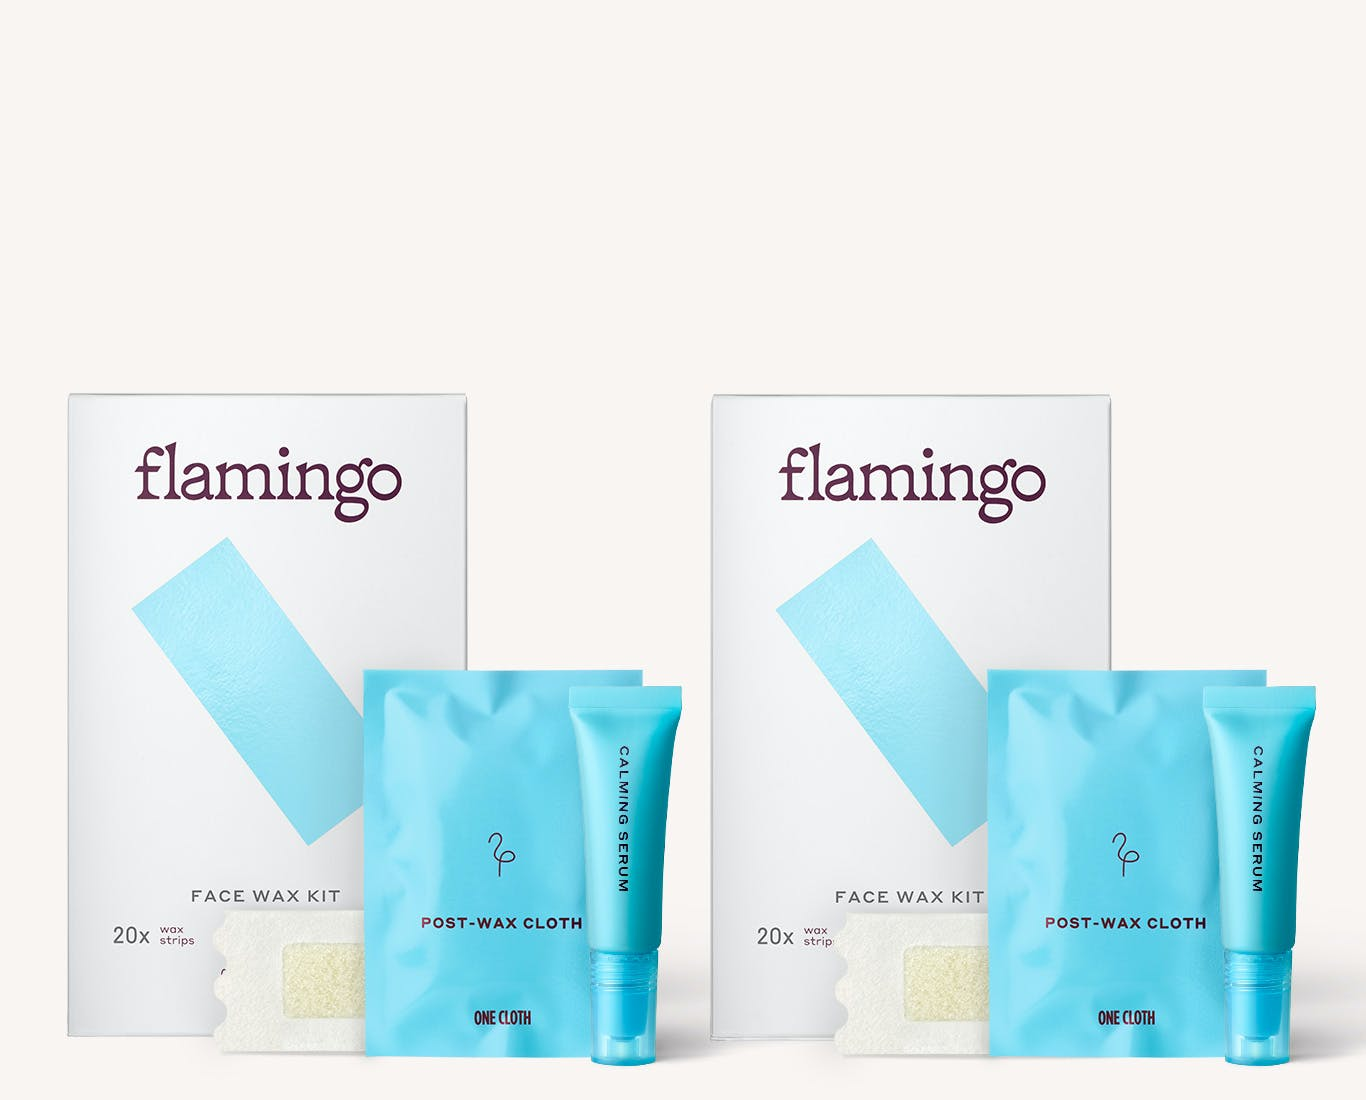 2 Flamingo Face Wax Kits with twice the face wax strips, post wax cloths, and calming serums